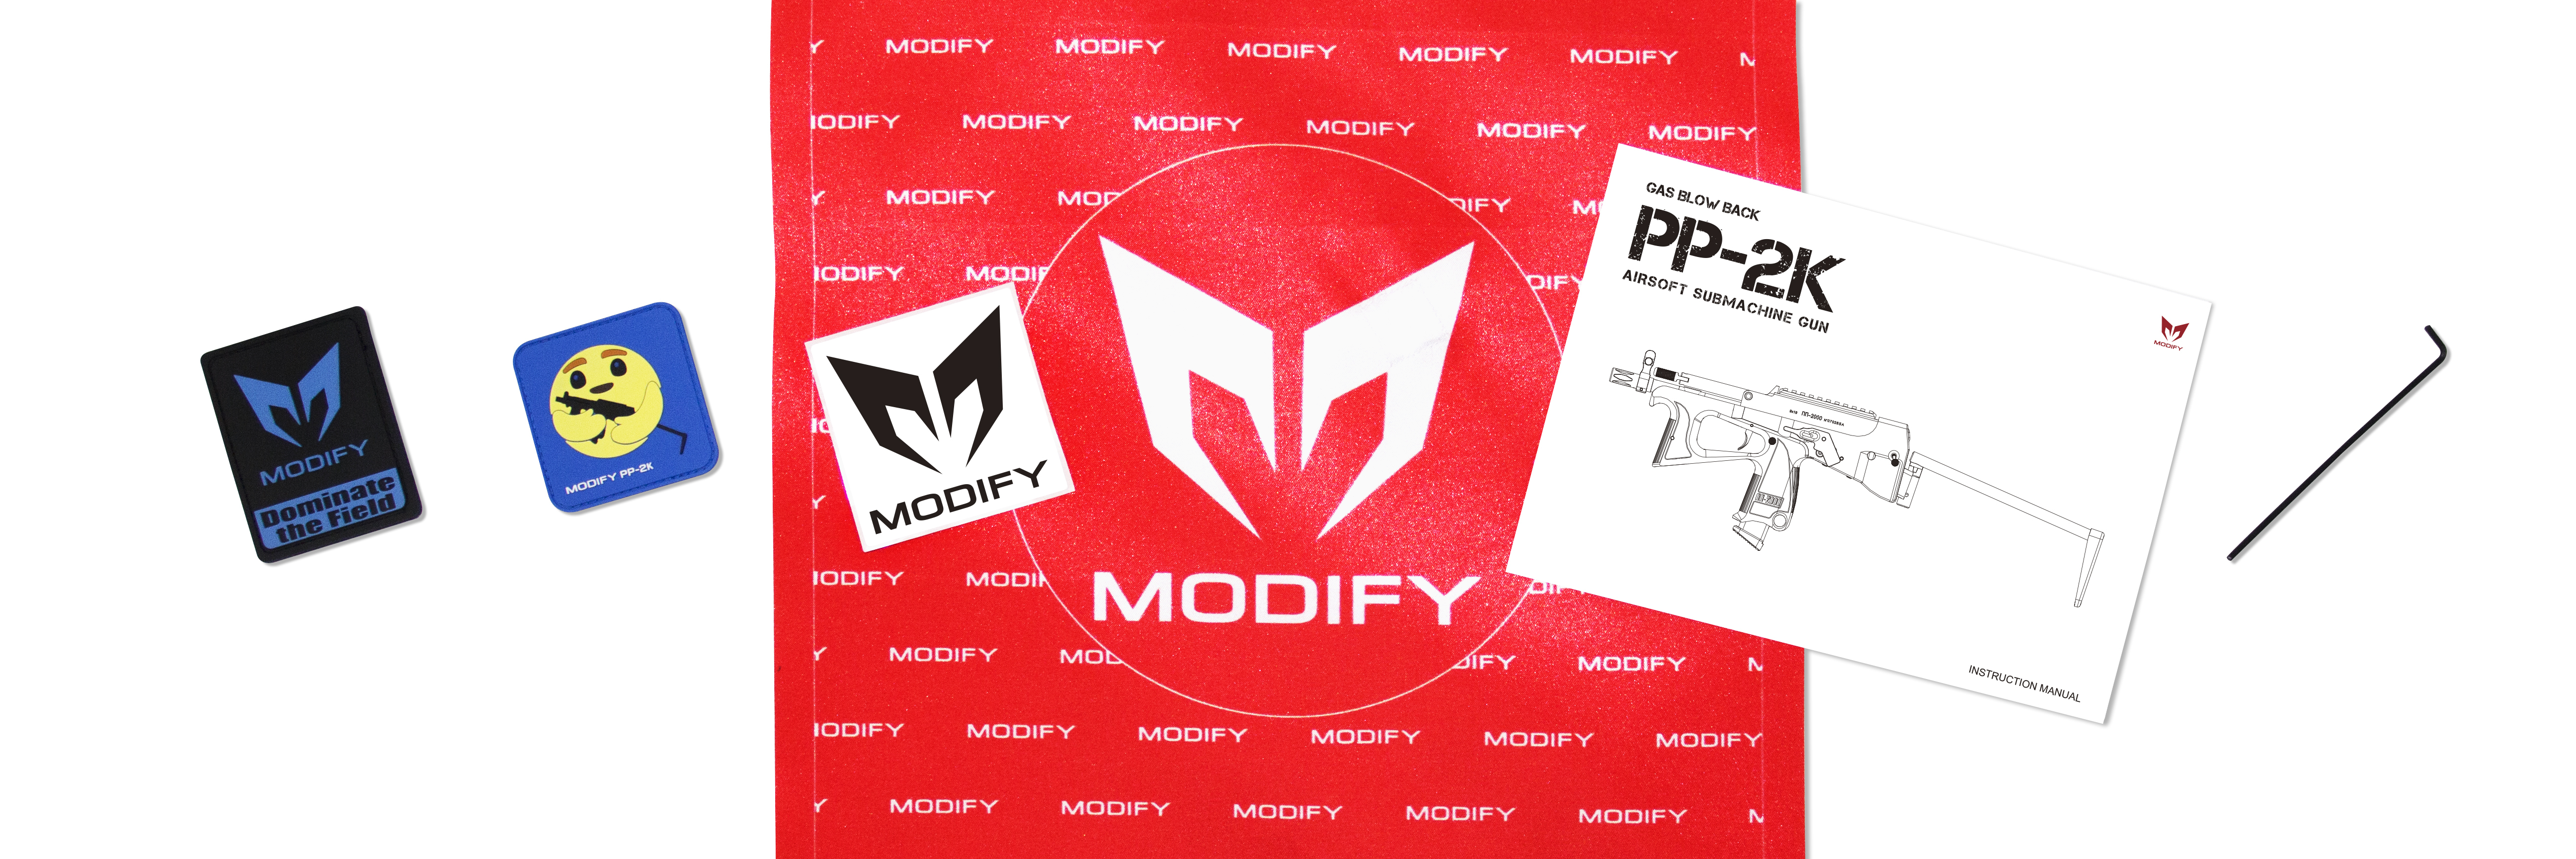 modify-pp2k-accessories-pack